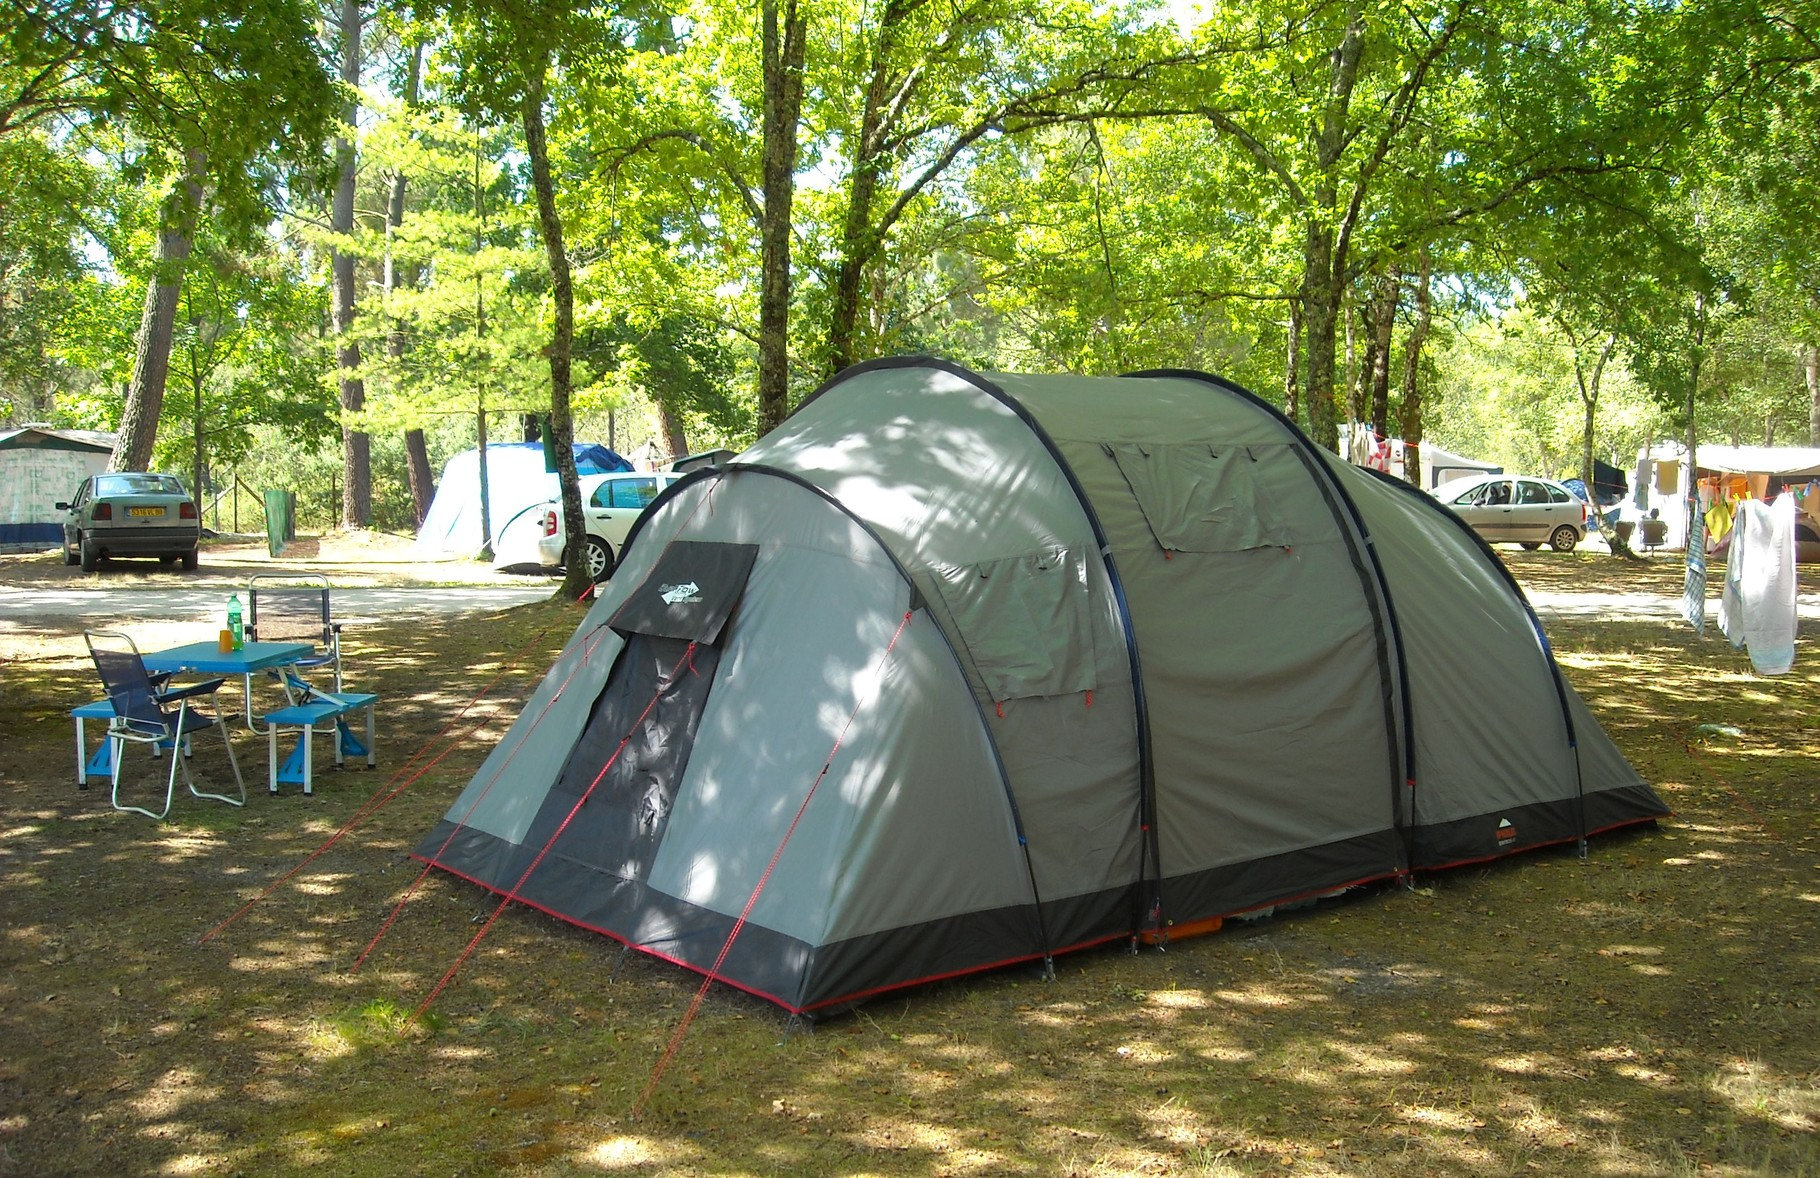 Location lacanau camping